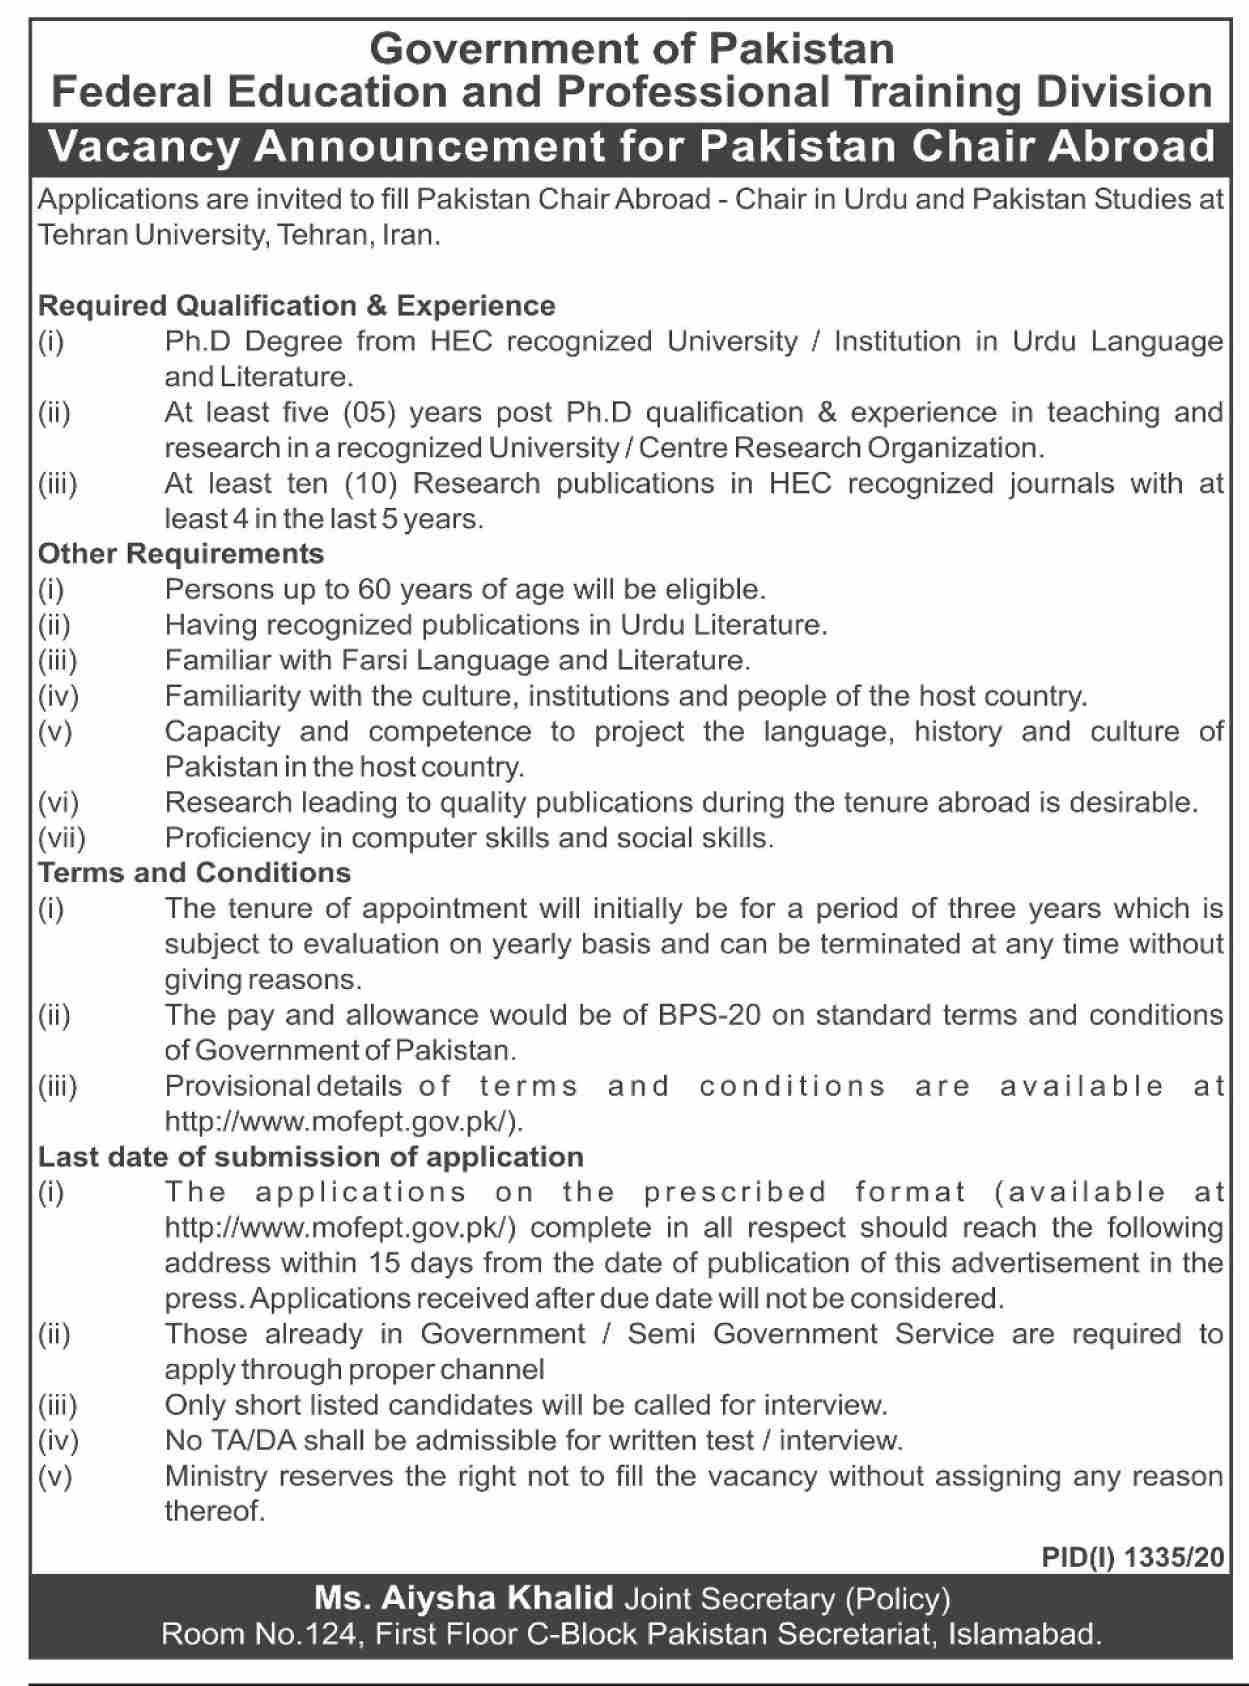 Federal Education and Professional Training Division Government of Pakistan Jobs September 2020